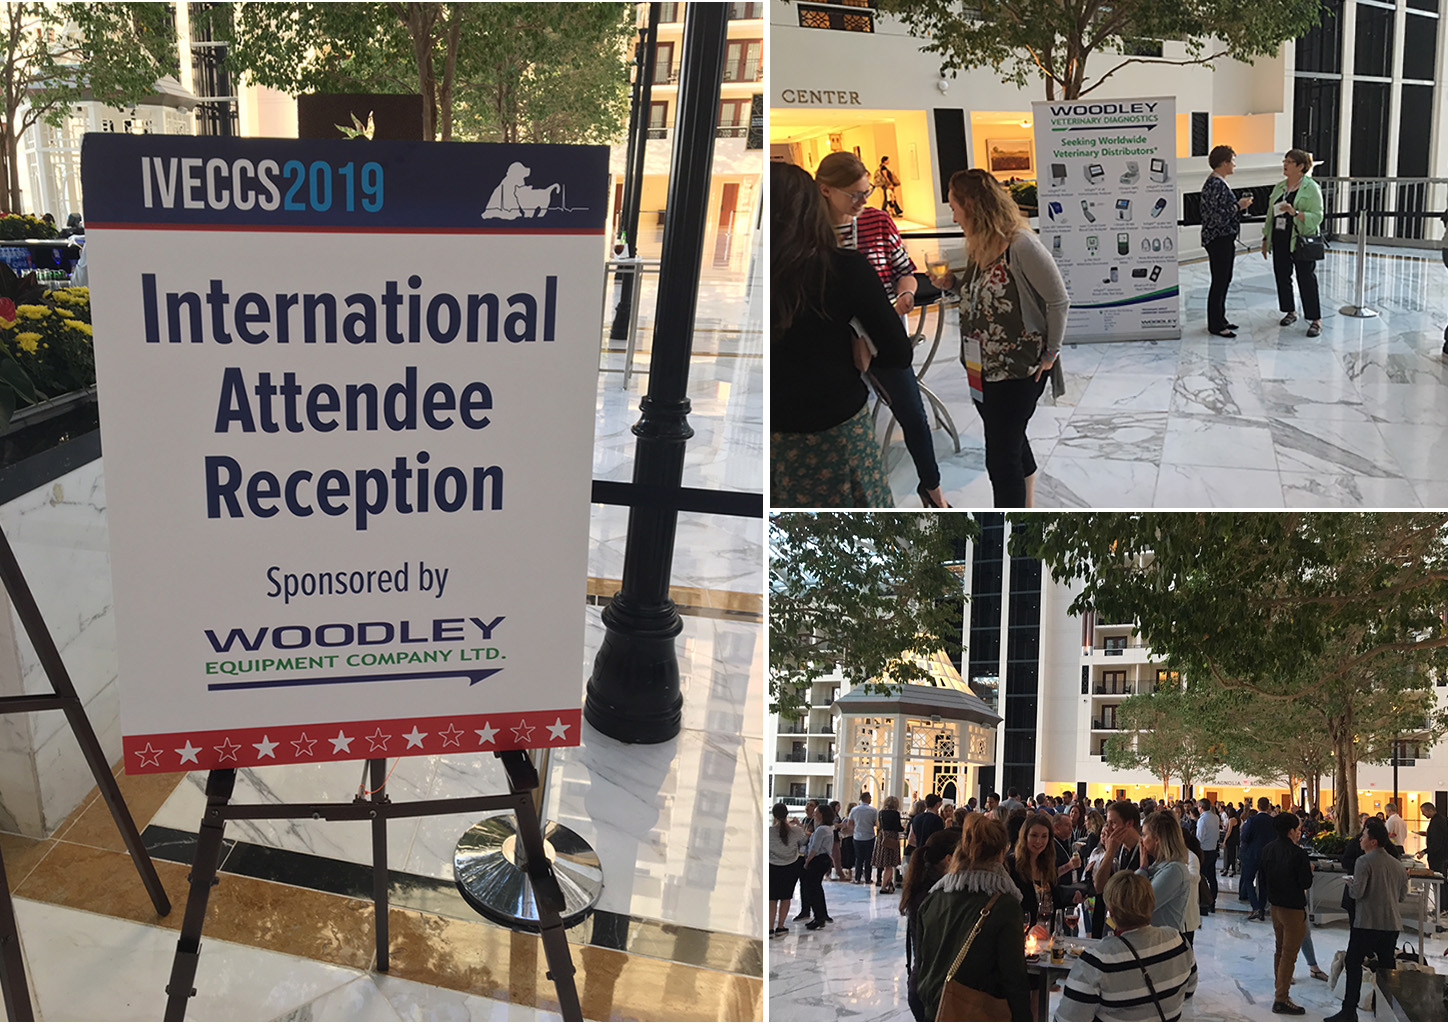 Woodley Sponsor the IVECCS 2019 International Attendee Reception